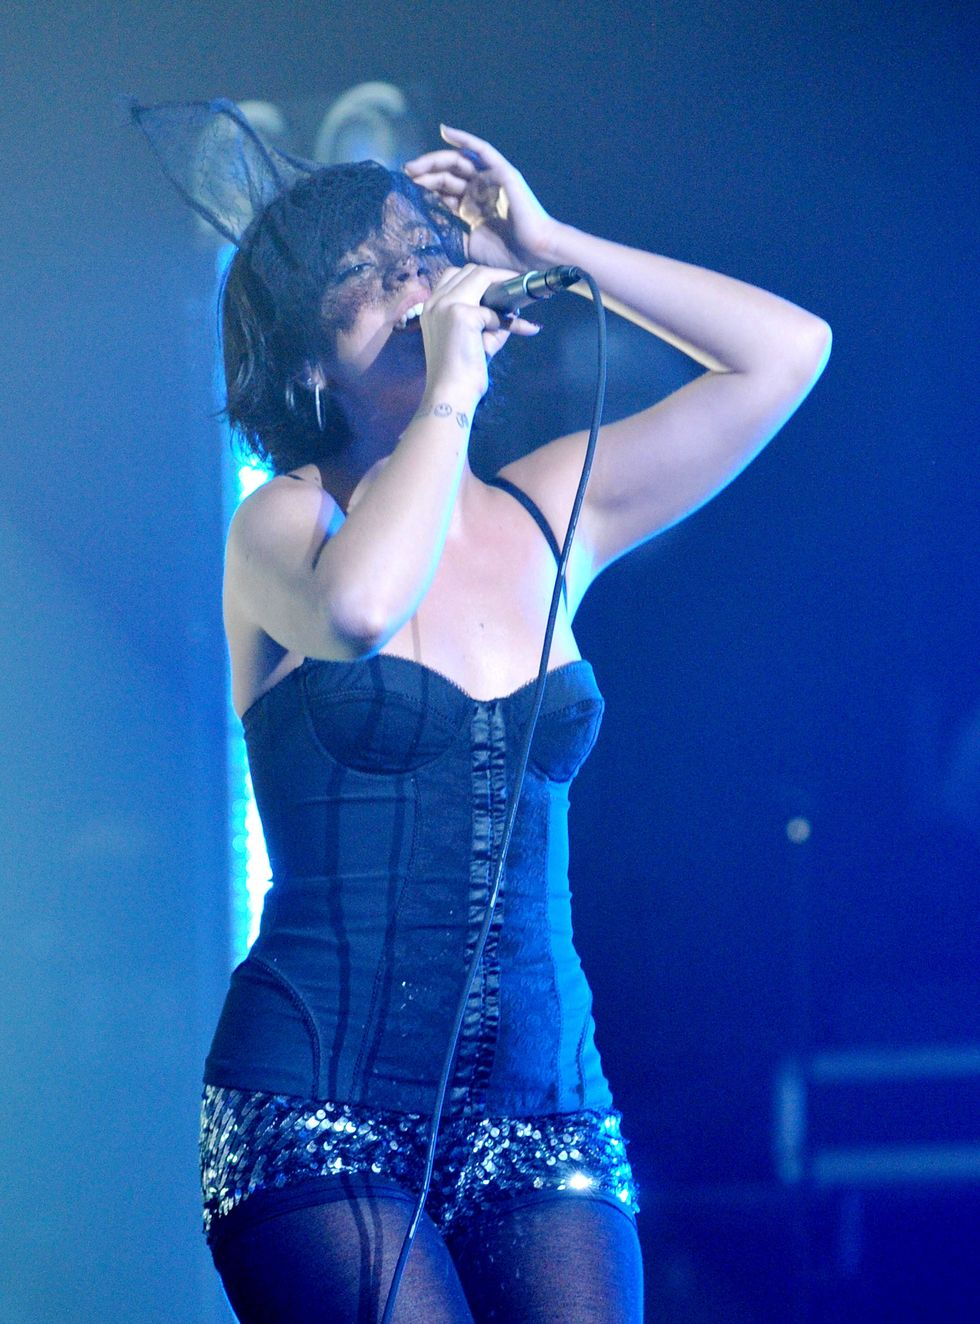 lily-allen-performs-in-concert-in-los-angeles-01